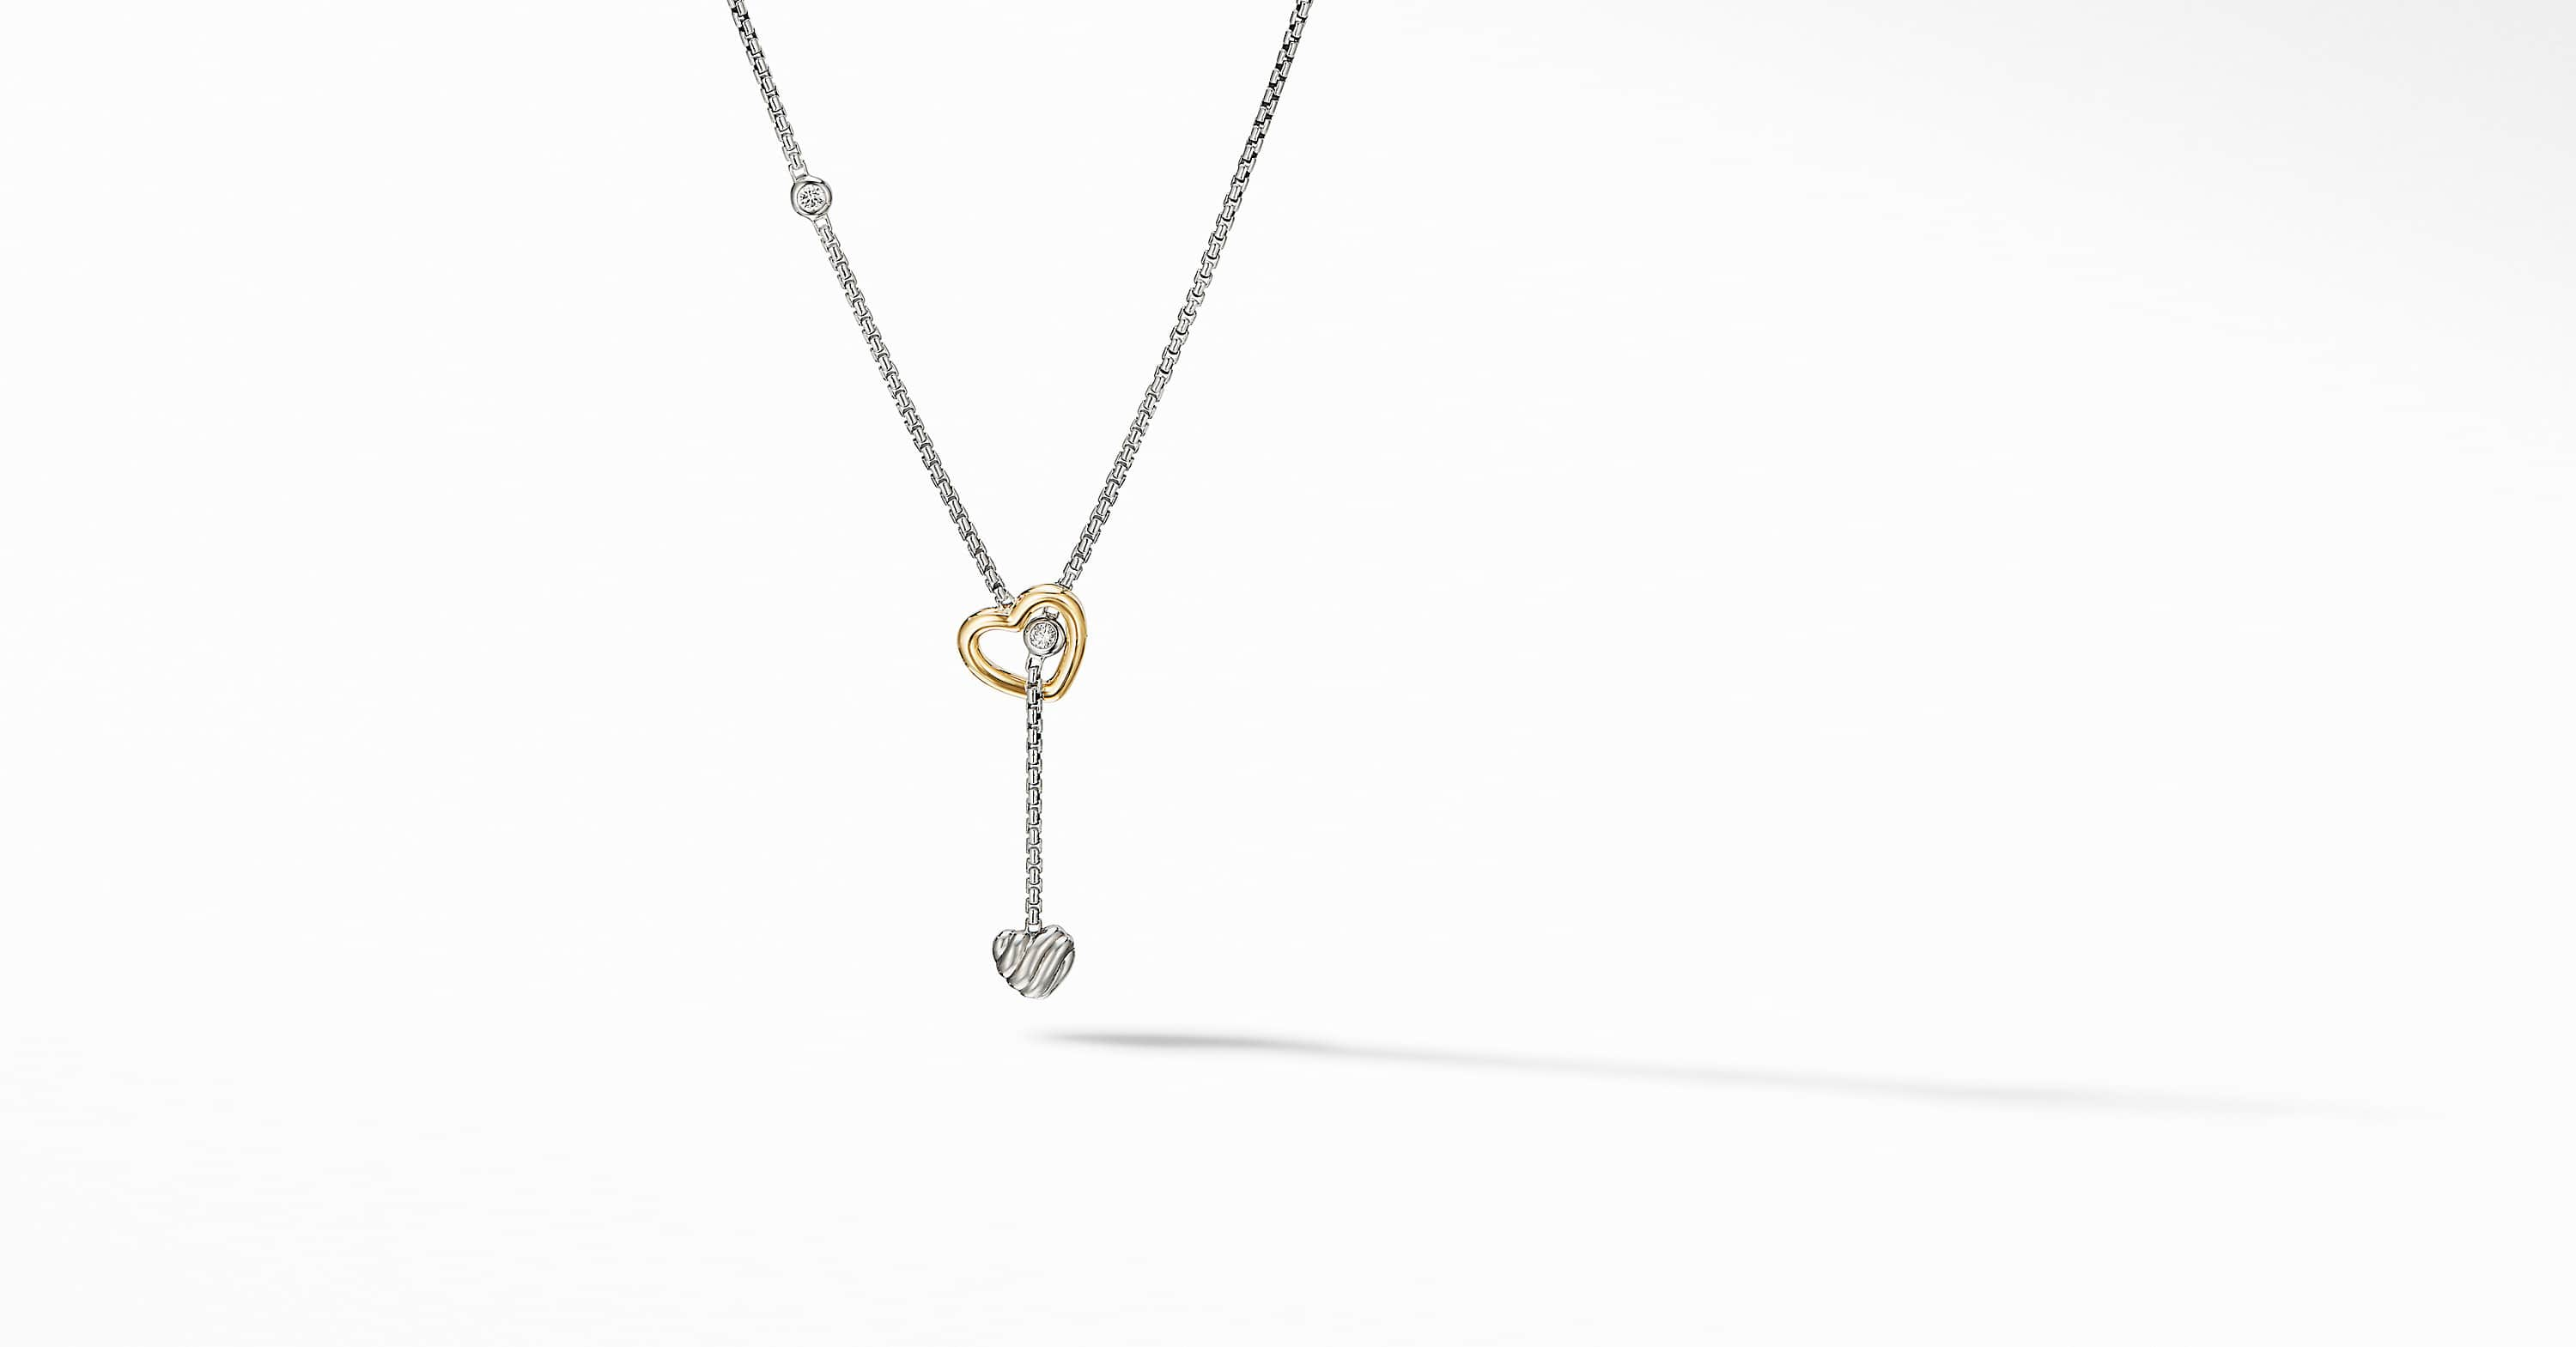 Cable Collectibles Heart Y Necklace with 18K Yellow Gold and Diamonds